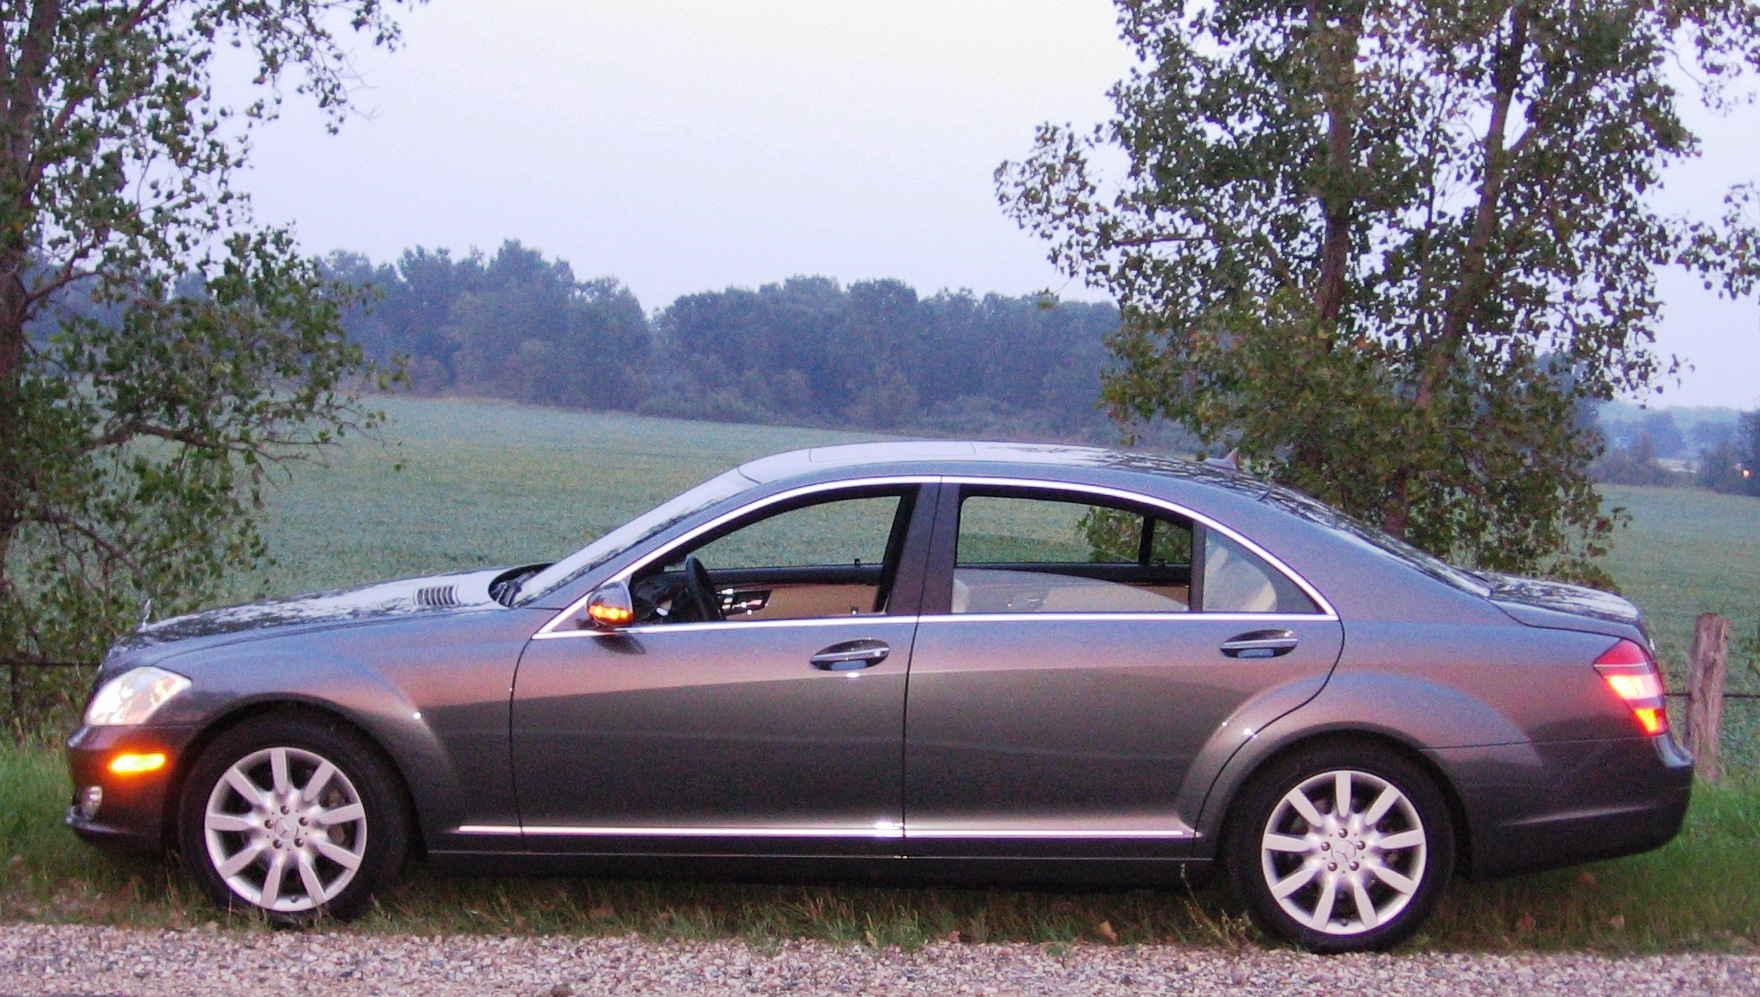 2007 mercedes benz cl550 coupe and 2007 s class reviews for 2007 mercedes benz s550 coupe